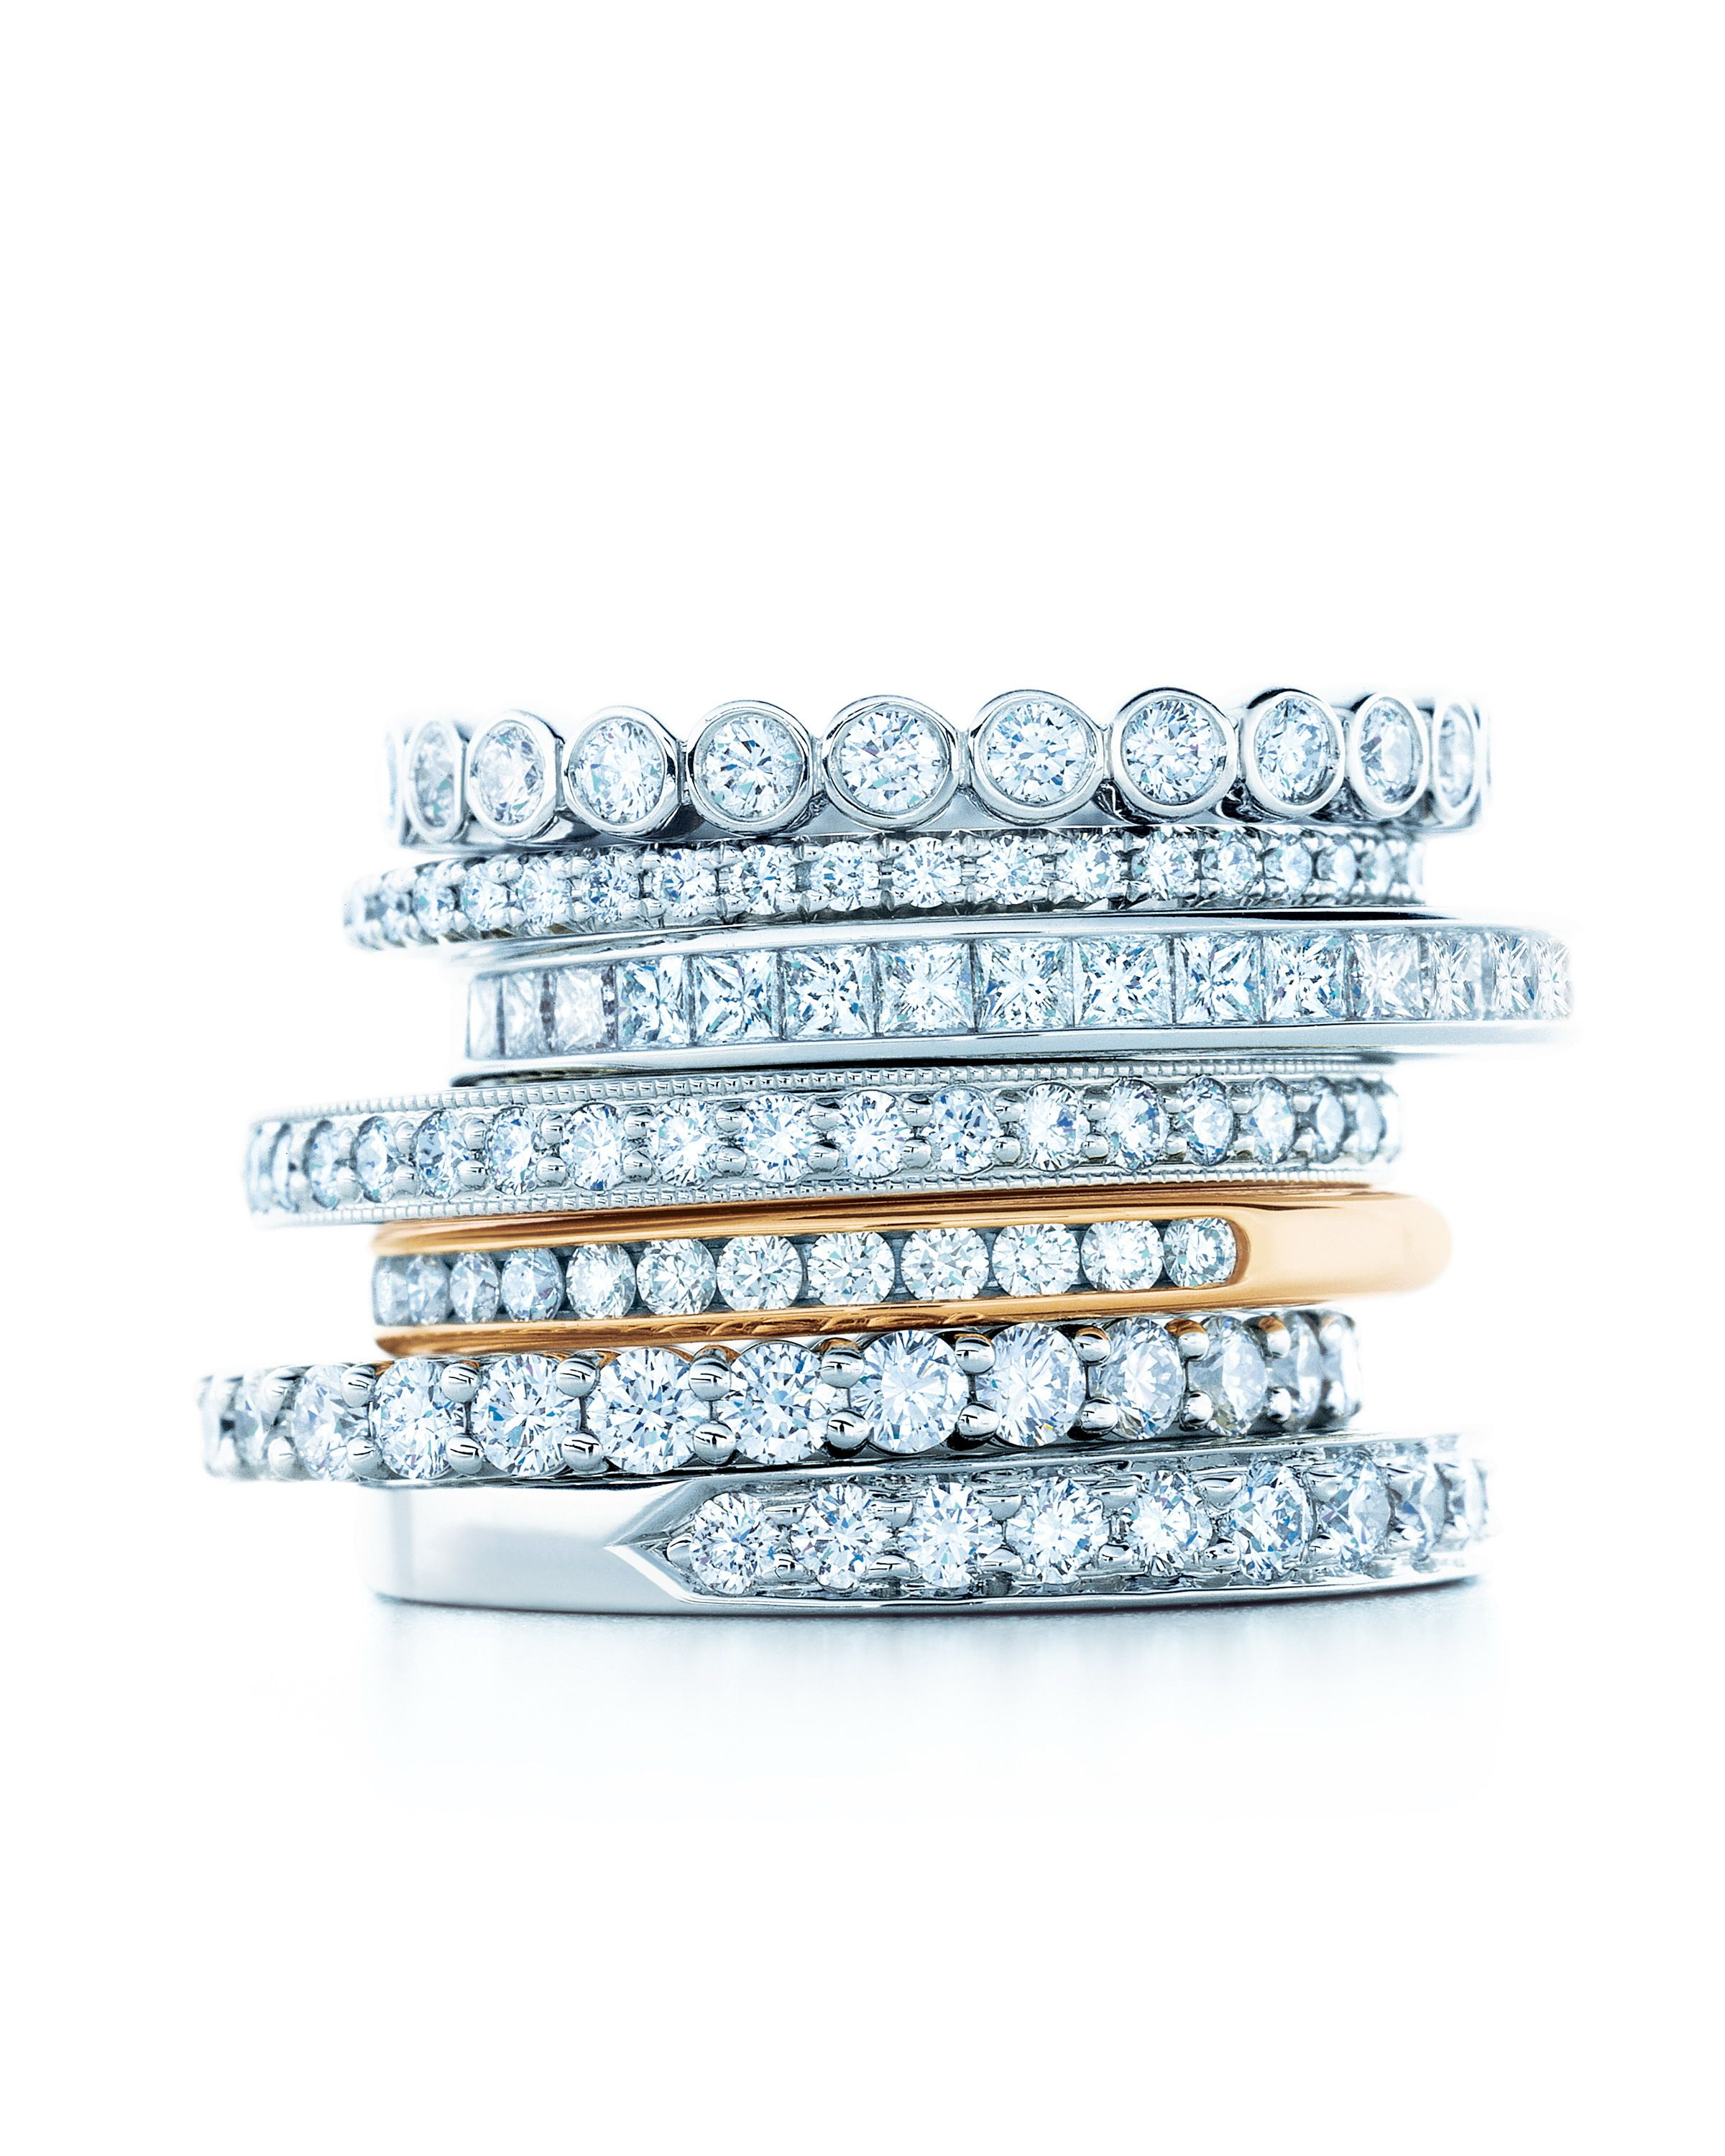 89f9f2a1d219 Tiffany celebration ring stack.